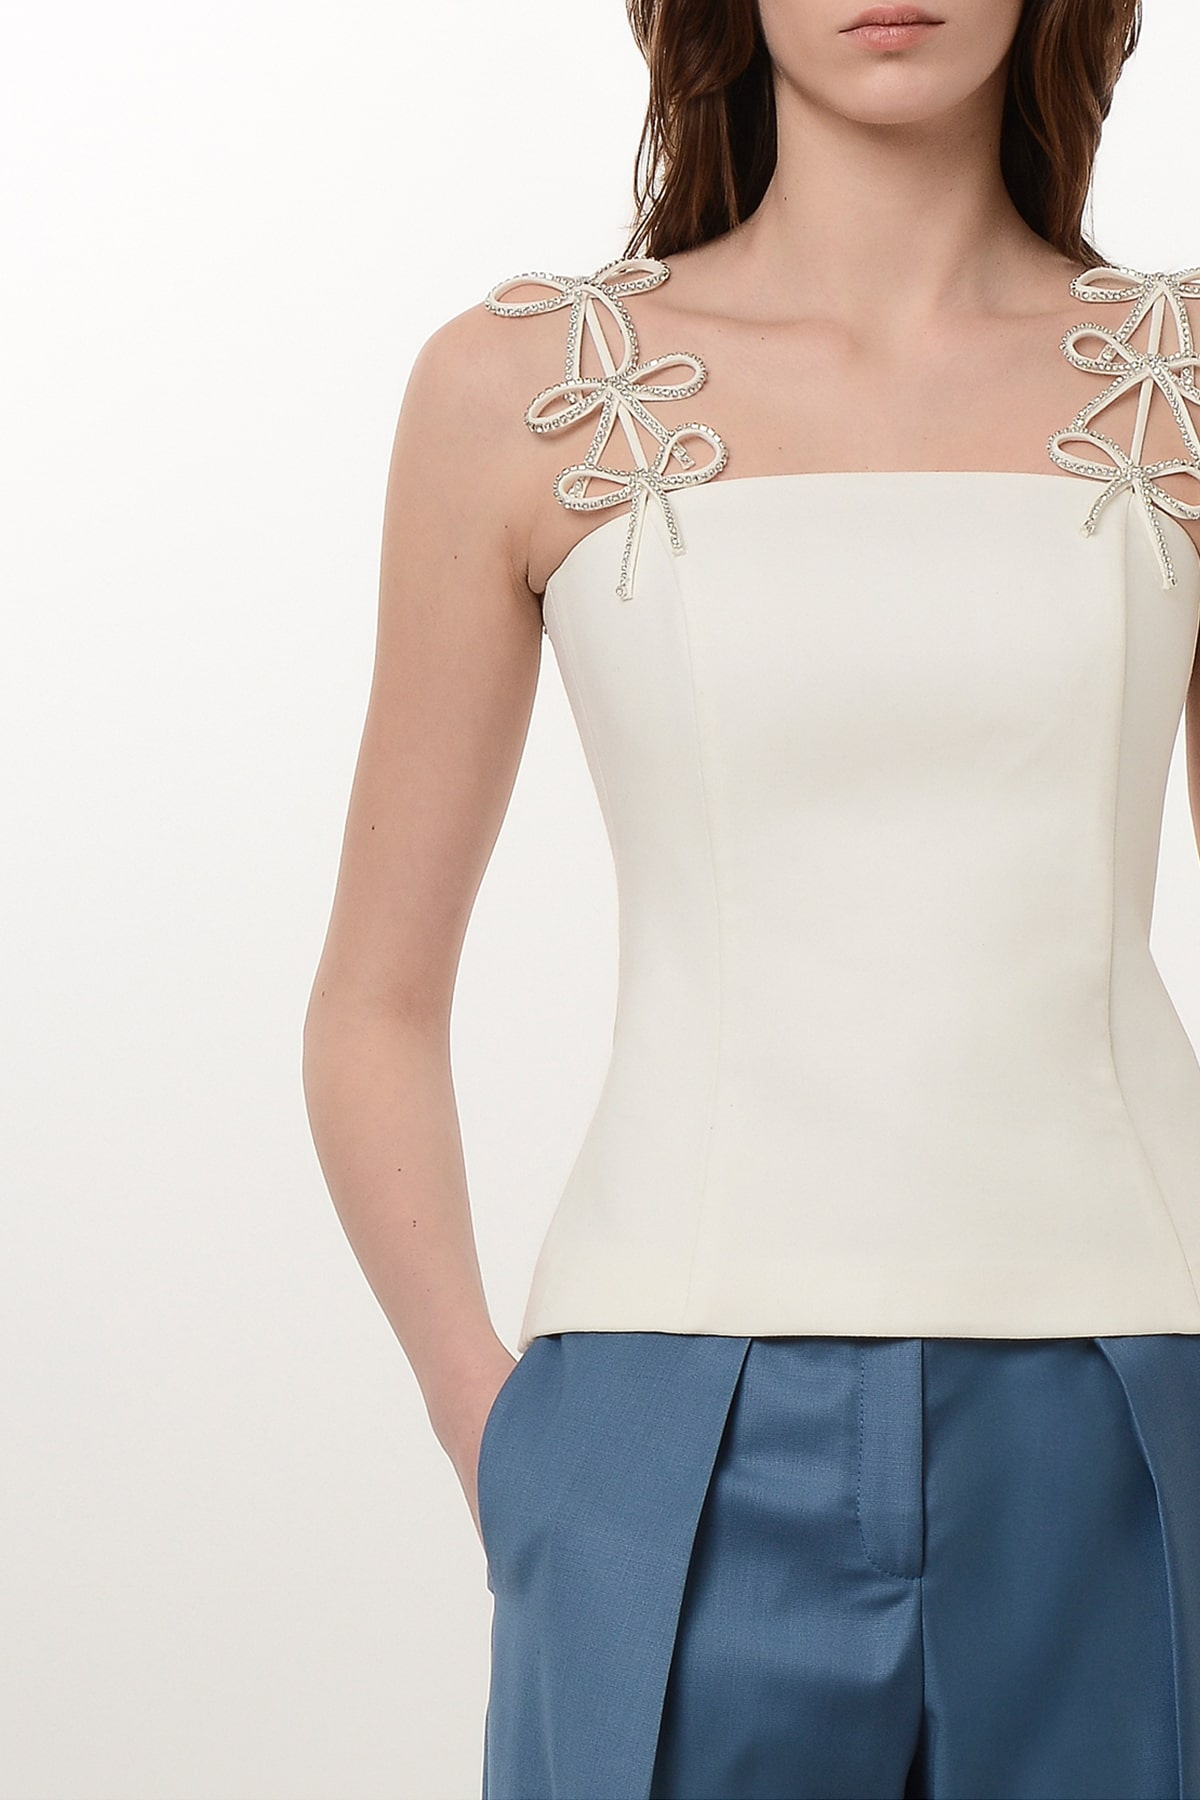 Corset style blouse with crystal ribbons 3